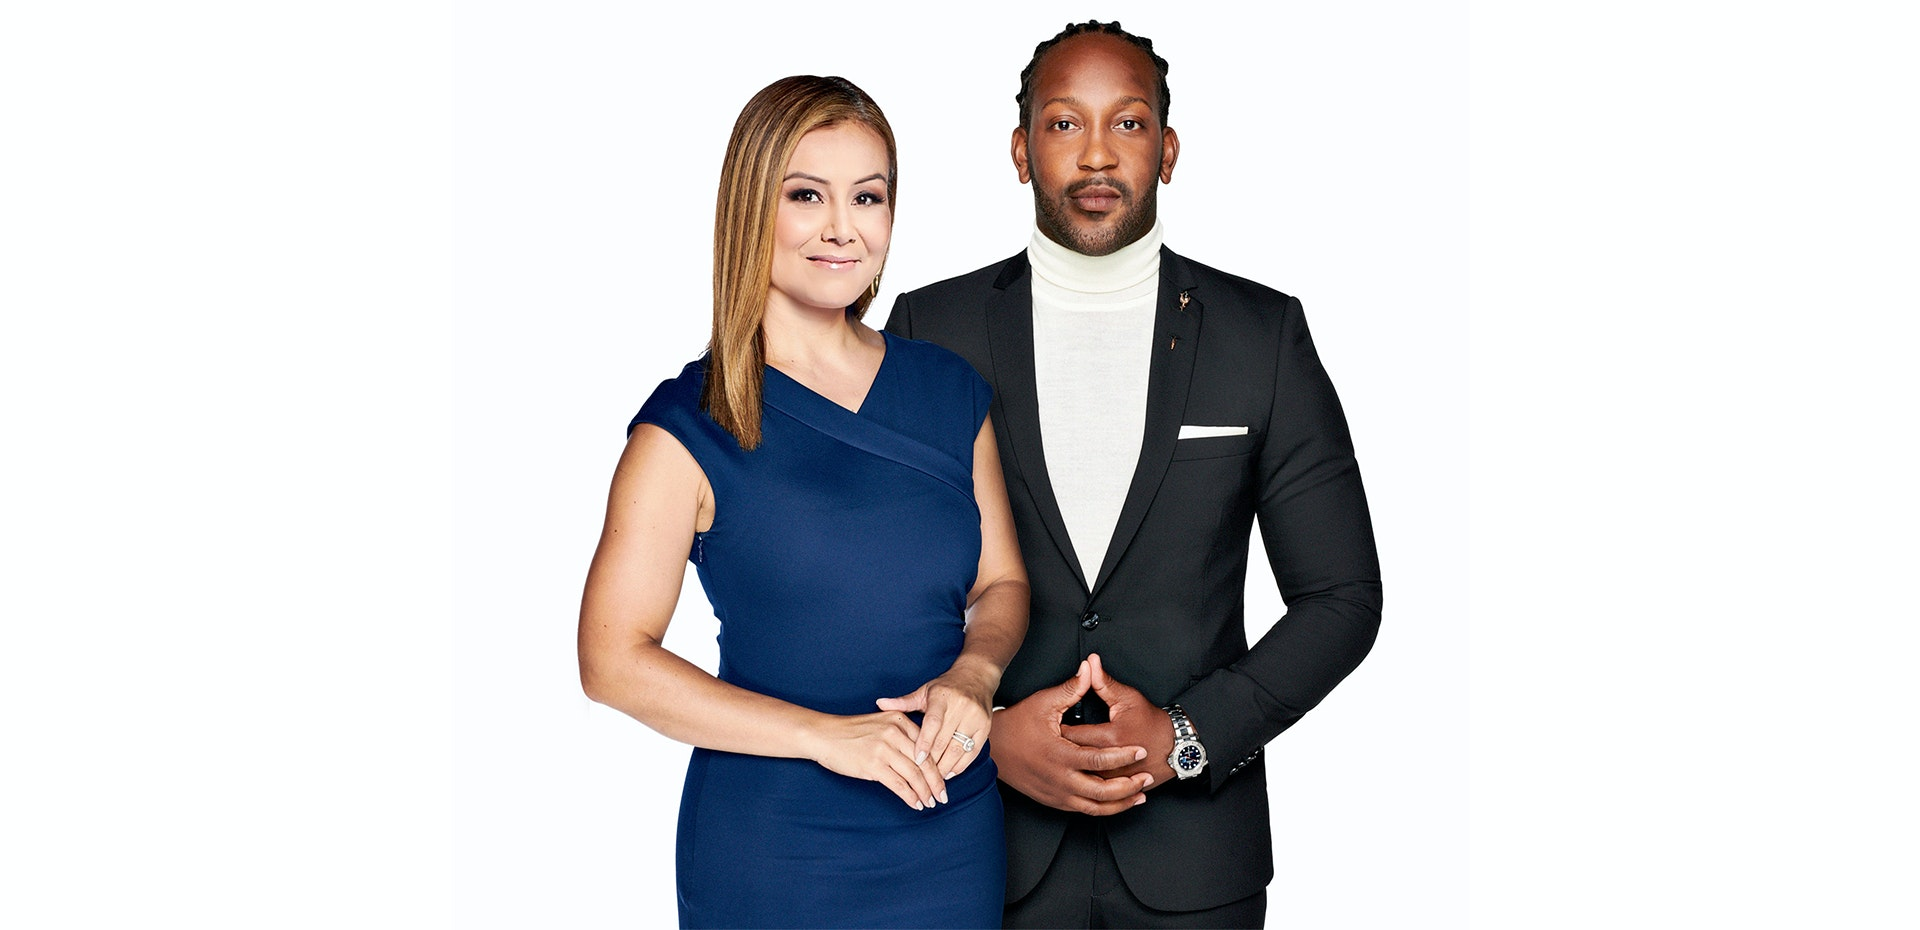 Ctv Presents In This Together A Bell Let S Talk Day Special Hosted By Tyrone Edwards And Melissa Grelo January 28 Bell Media